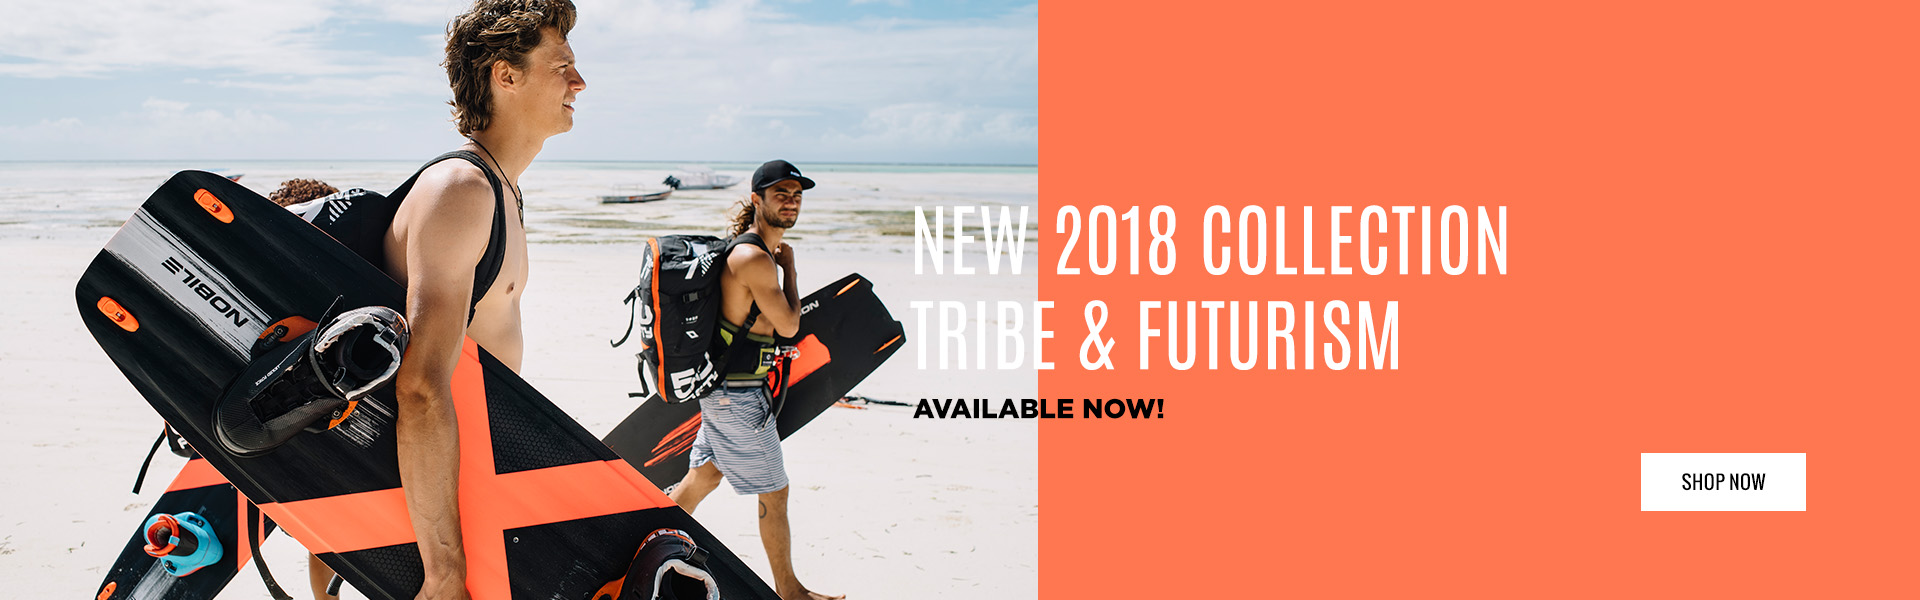 Tribe and Futurizm 2018